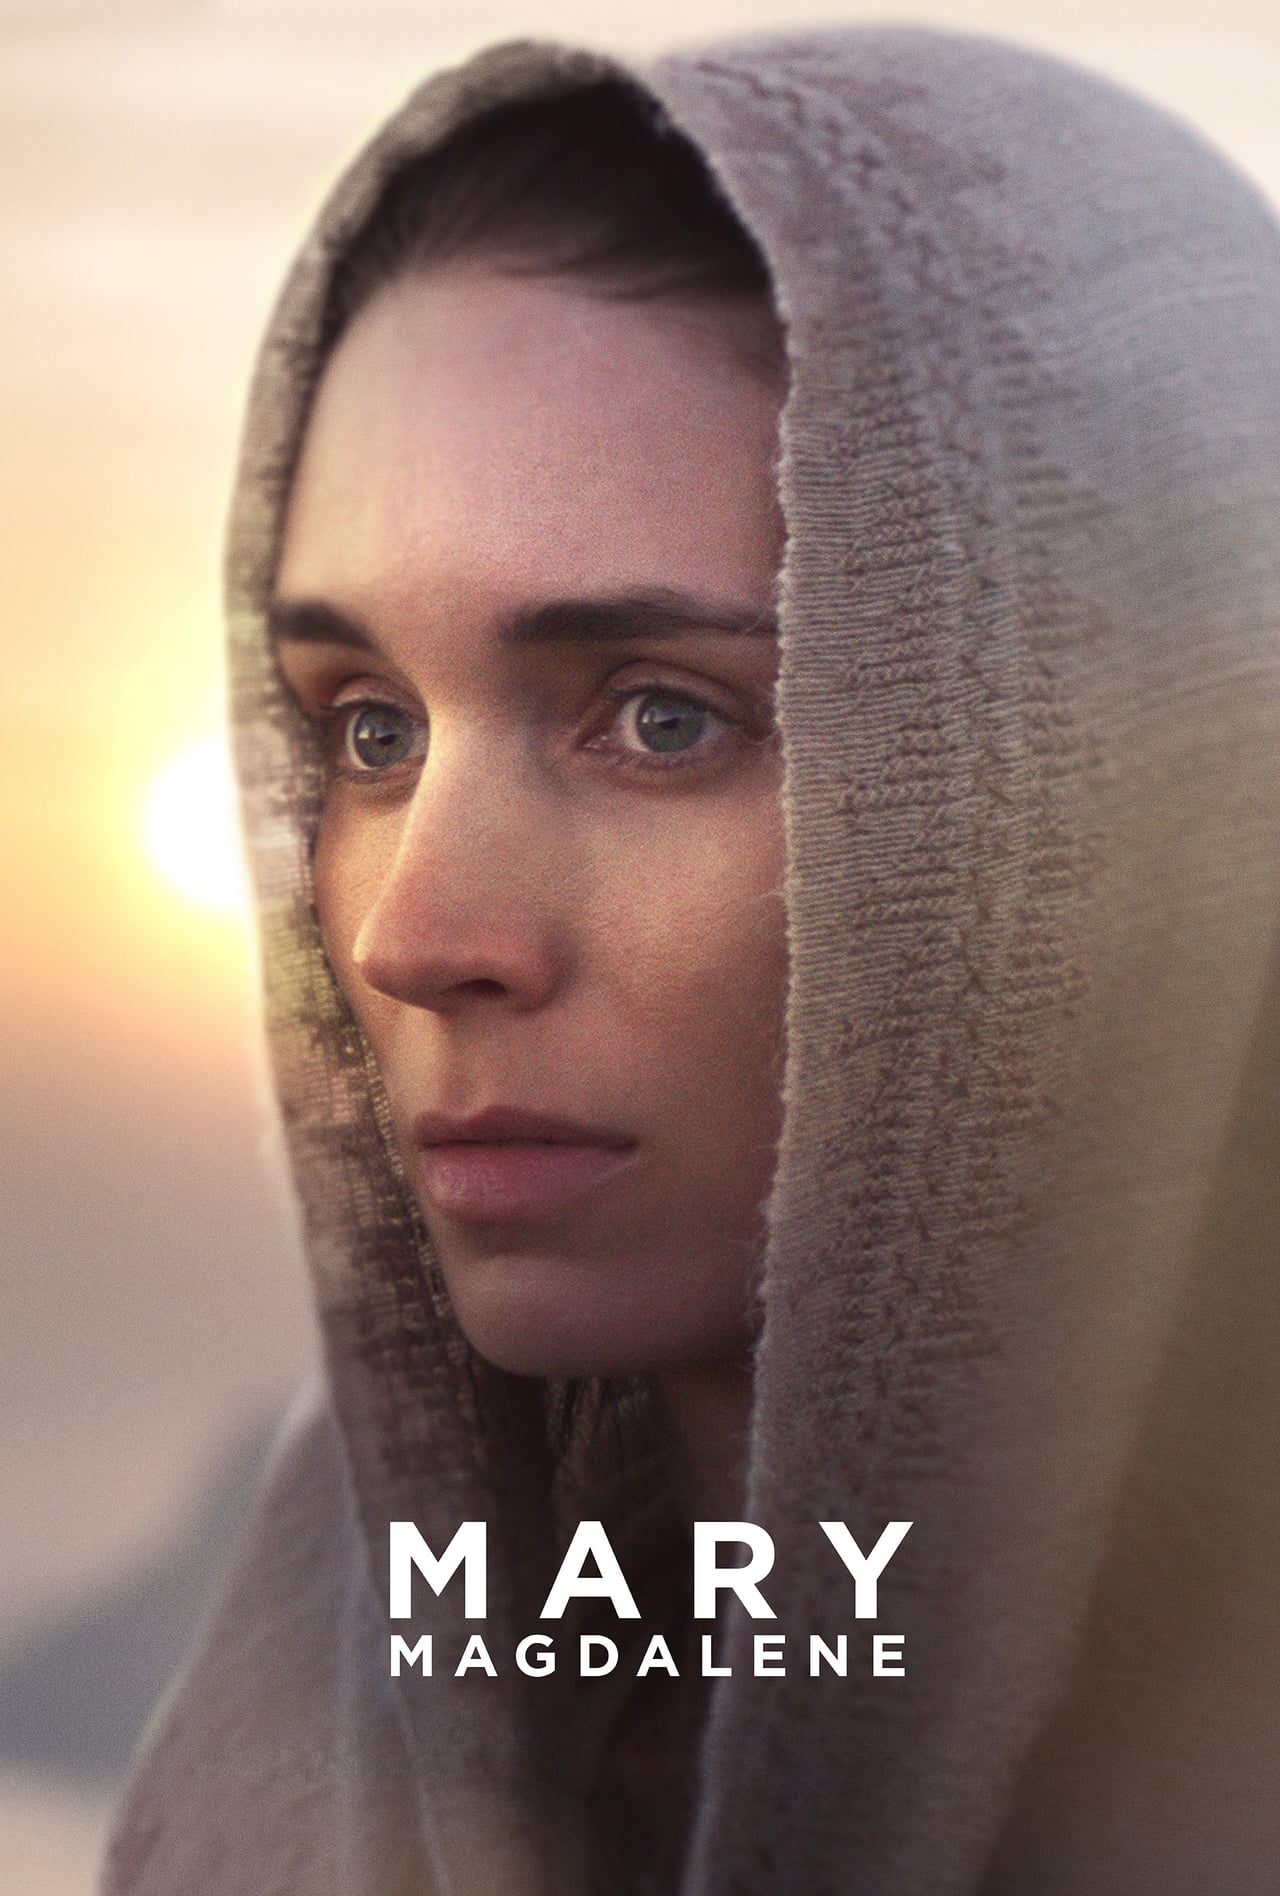 Download Film Mary Magdalene 2018